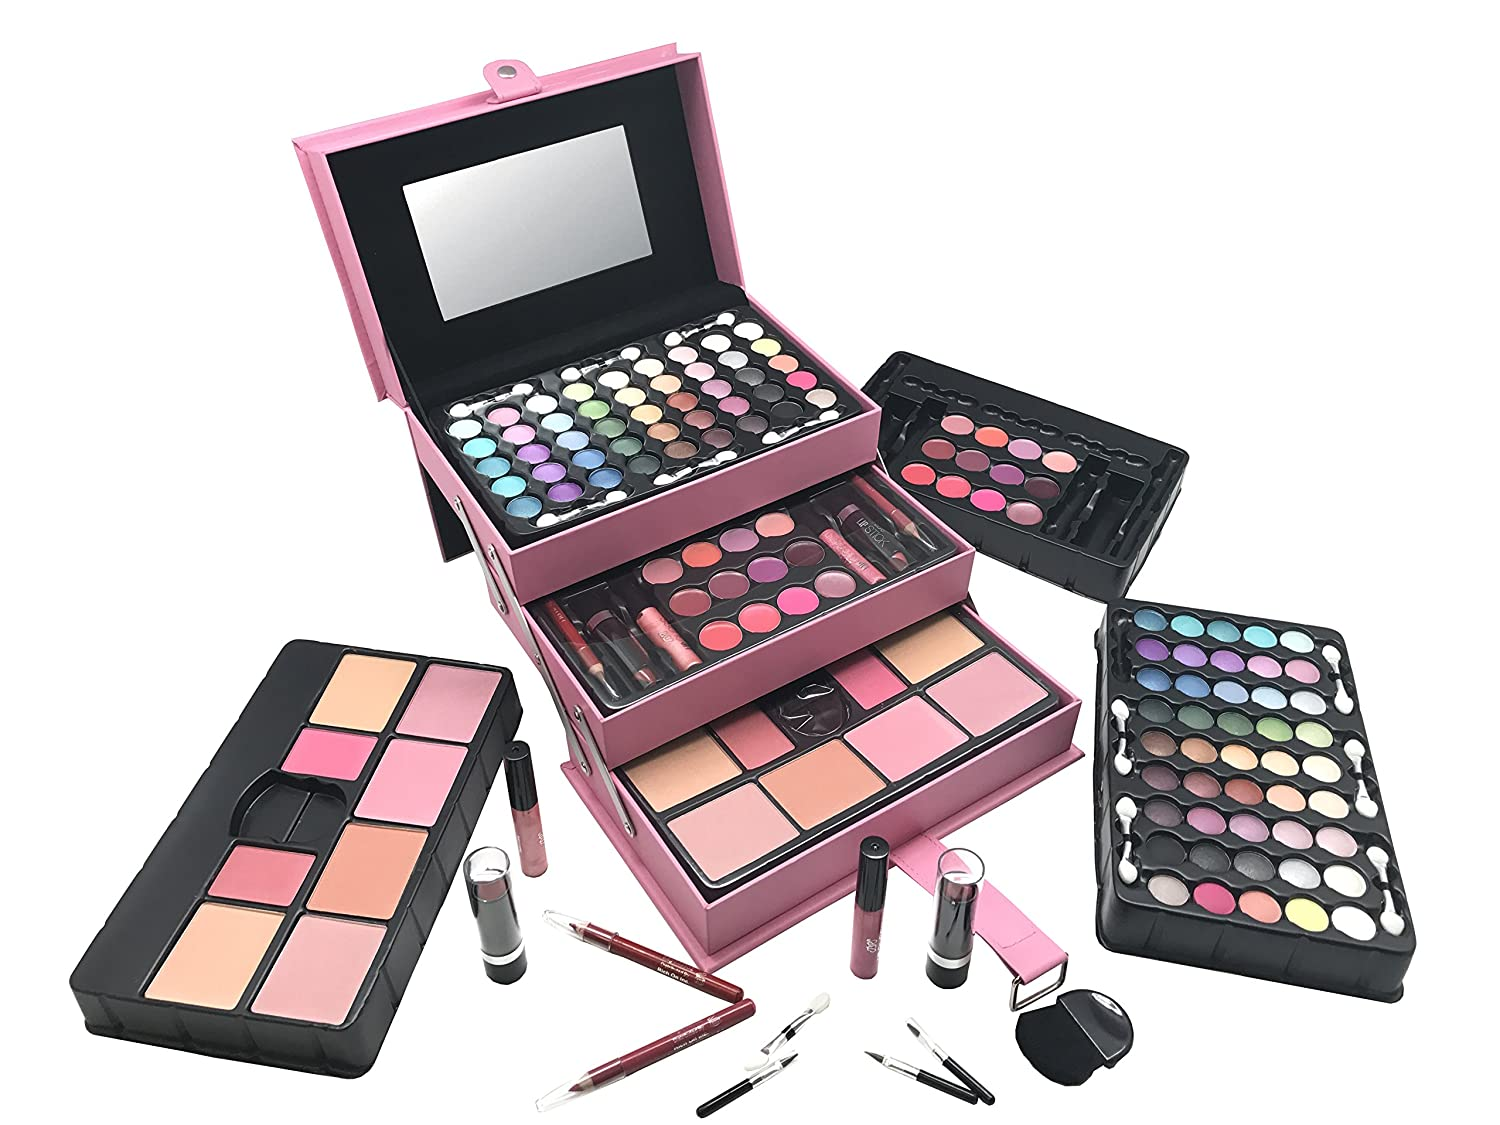 BR All In One Makeup Kit Eyeshadow, Blushes, Powder, Lipstick More Holiday Gift Set LightPink